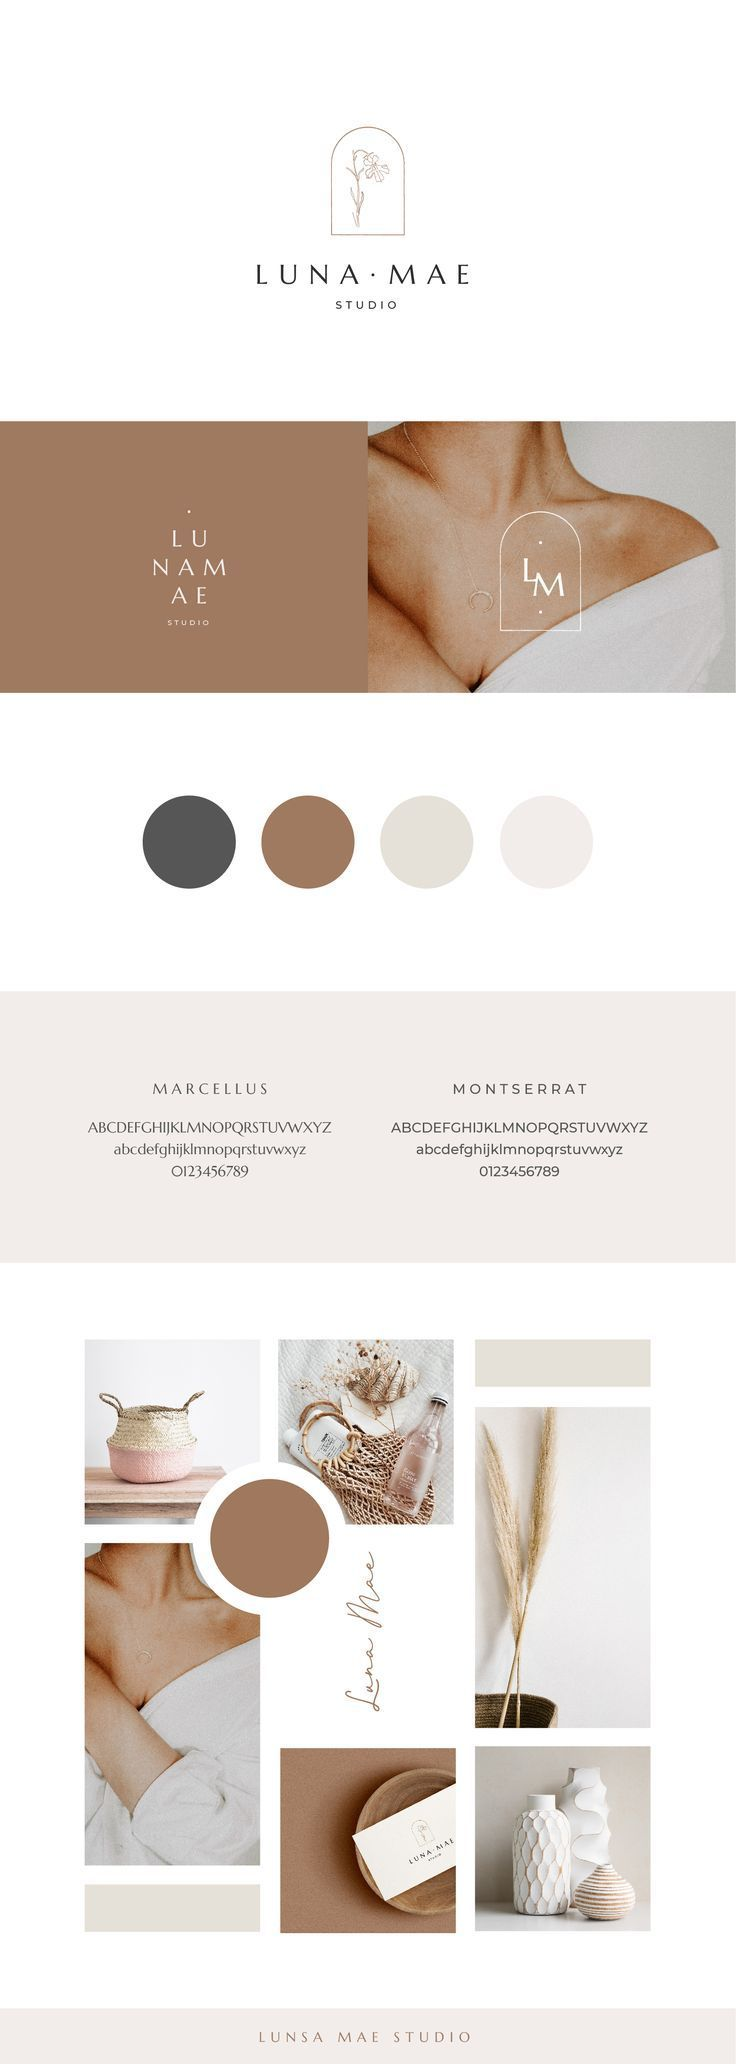 Brand Board Template | Mood Board Template | Branding | Canva Template | Canva Brand & Mood Board